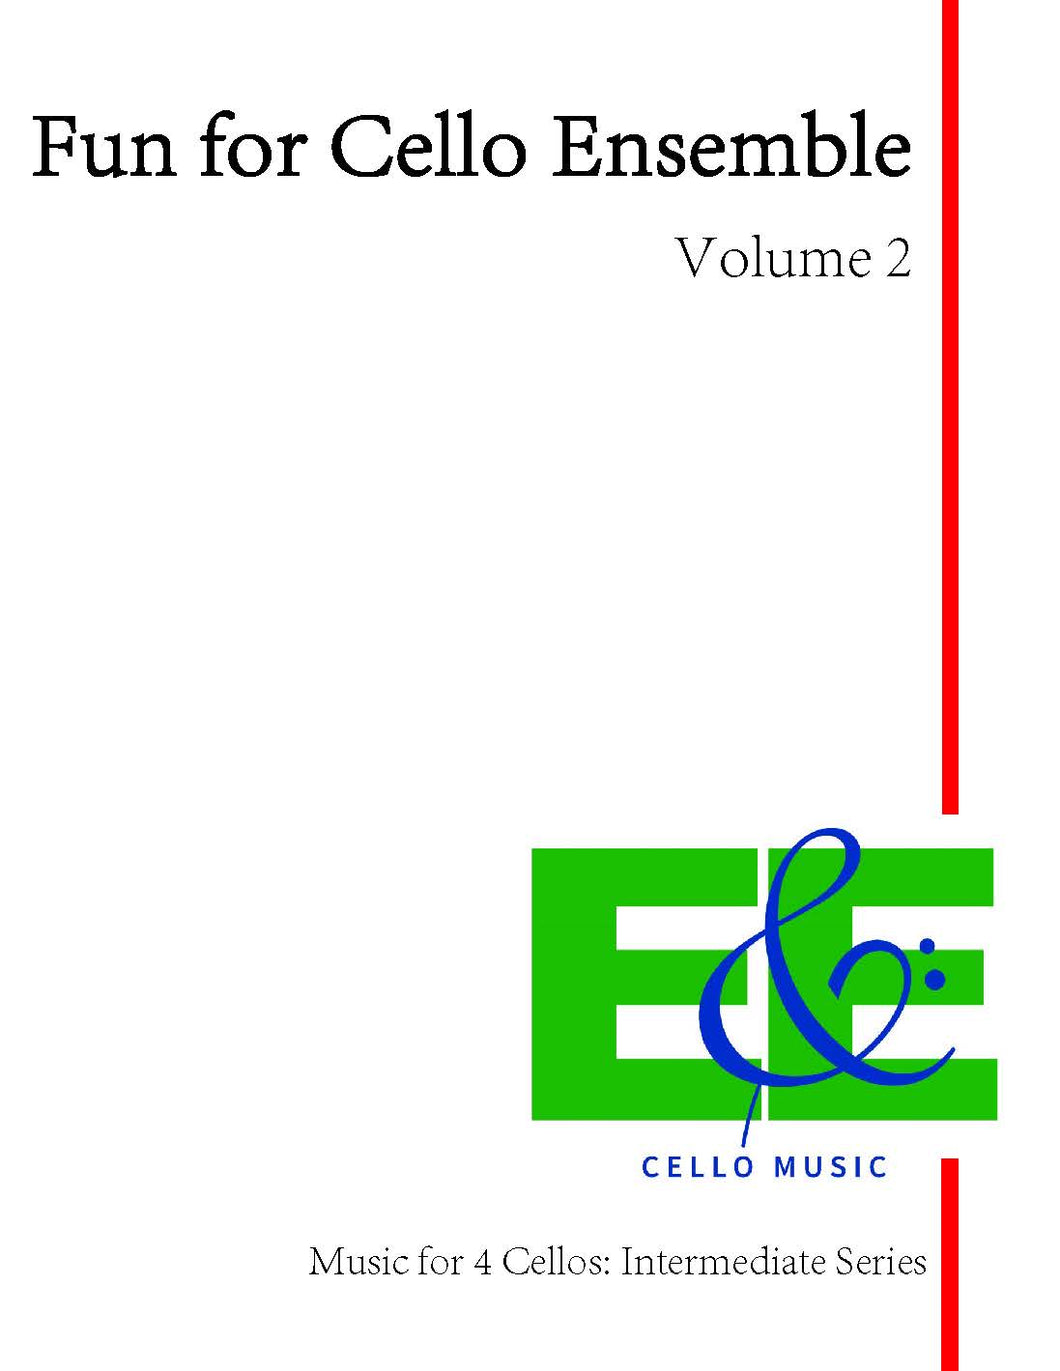 Fun for Cello Ensemble Vol. 2<br>Music for 4 Cellos:<br>Intermediate Series<br>*Digital Download